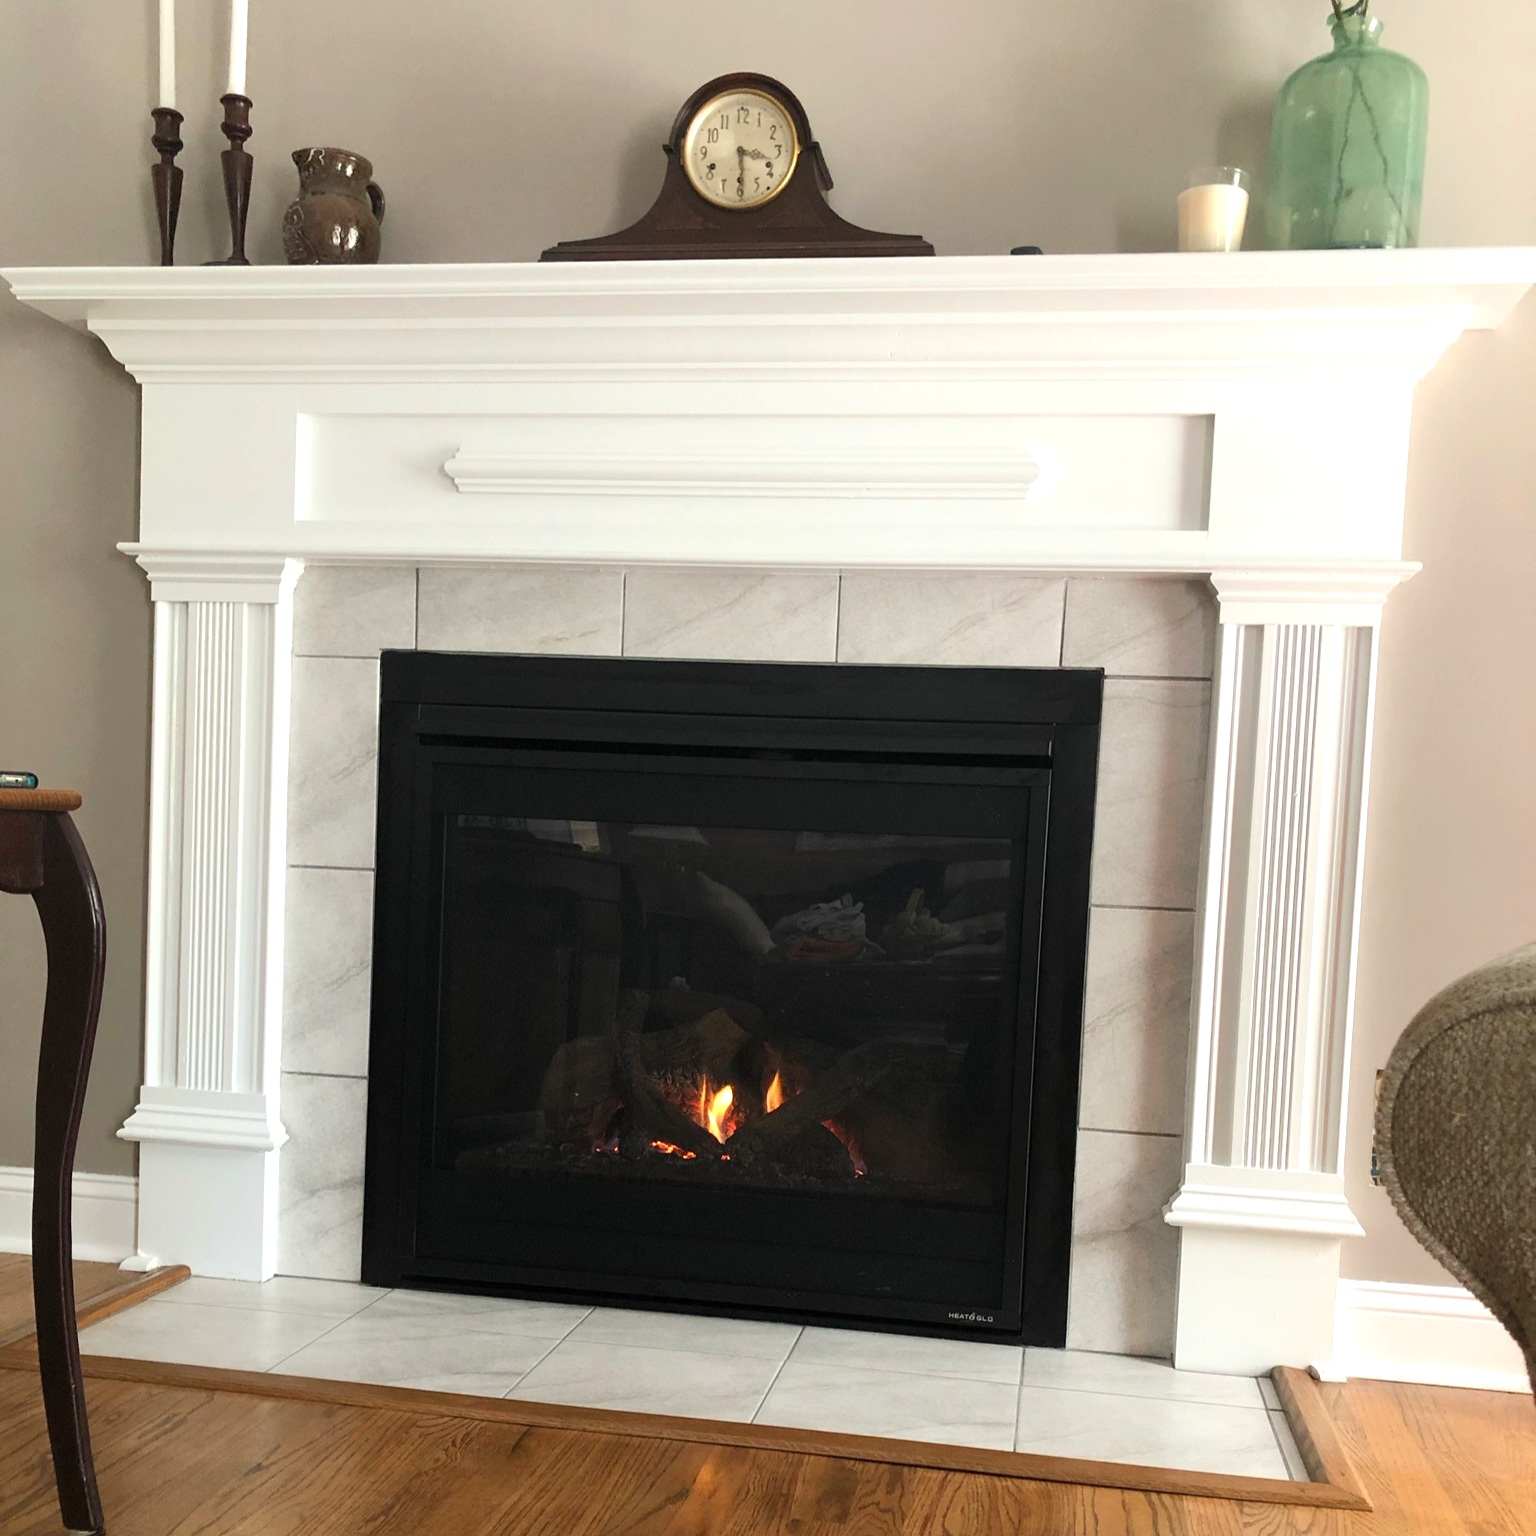 Fireplace tile installed